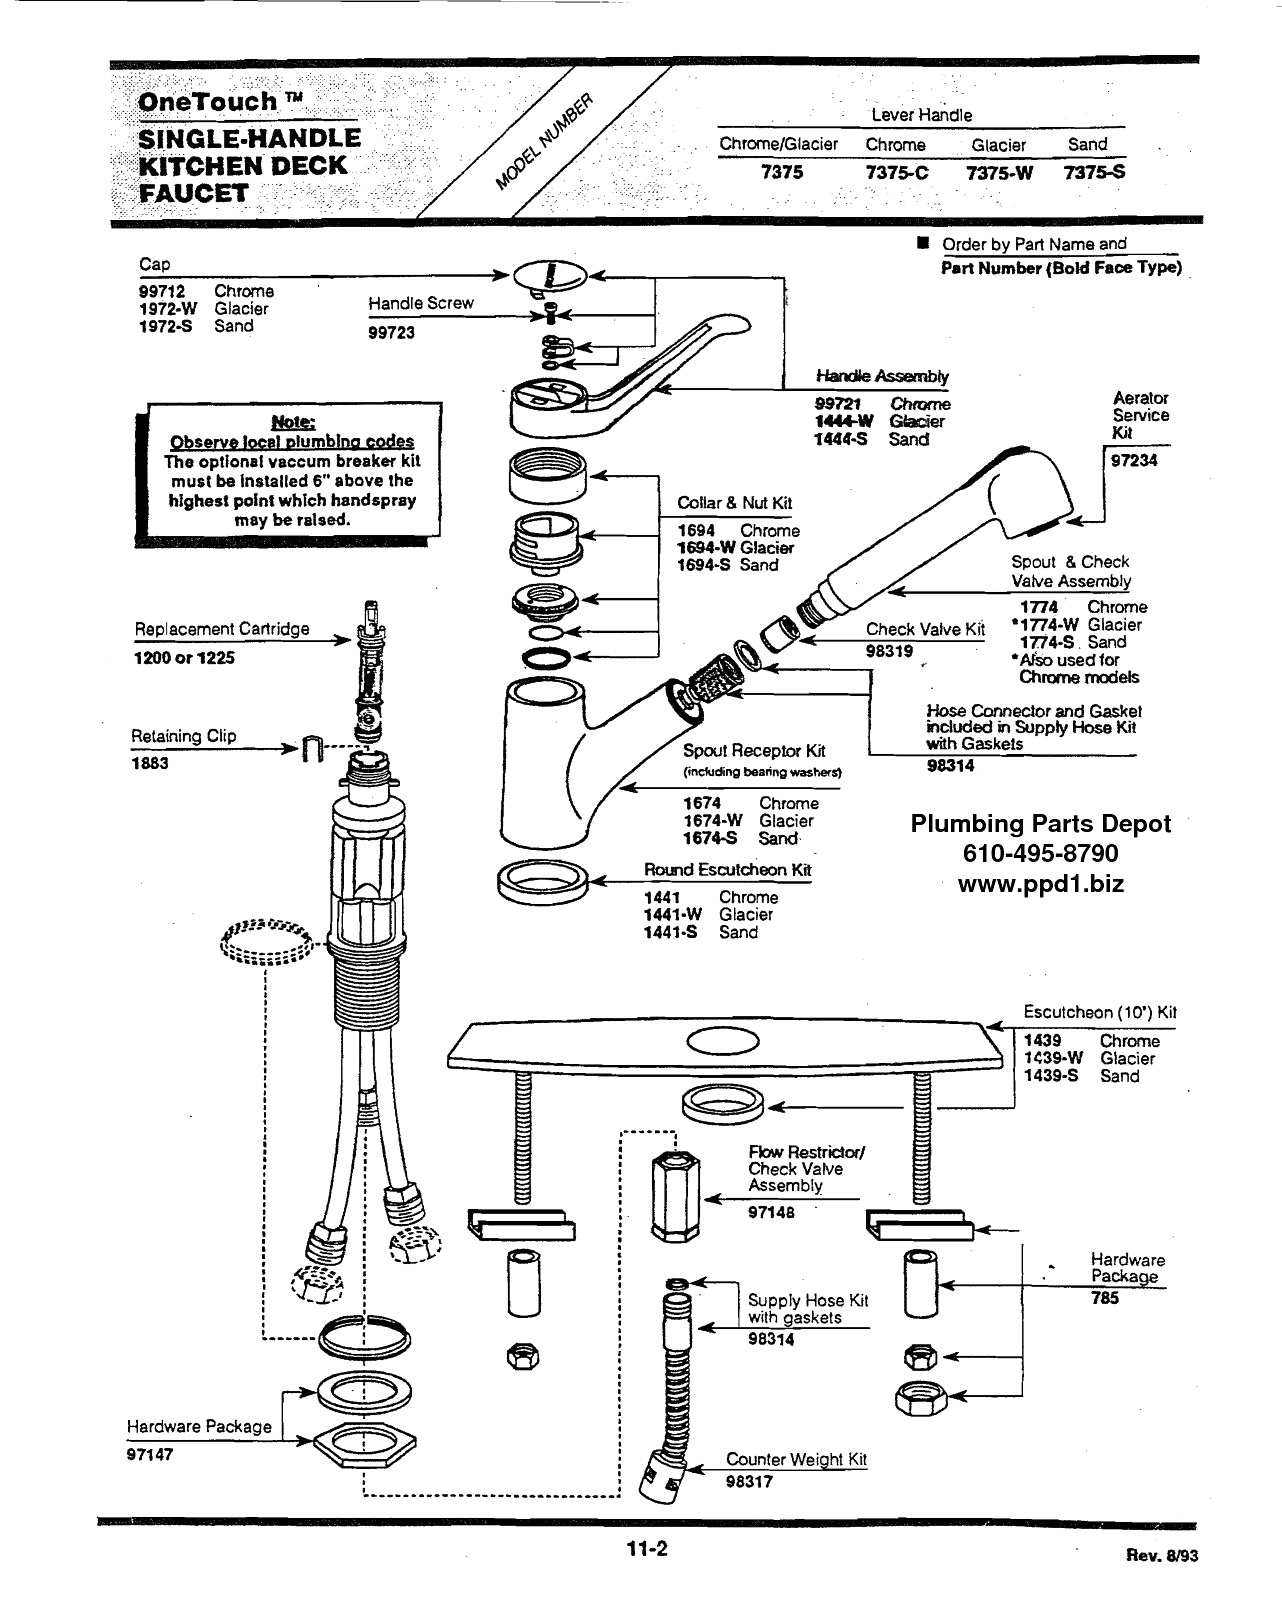 Stunning American Standard Kitchen Faucets Parts Gallery - Home inside American Standard Kitchen Faucet Parts Diagram